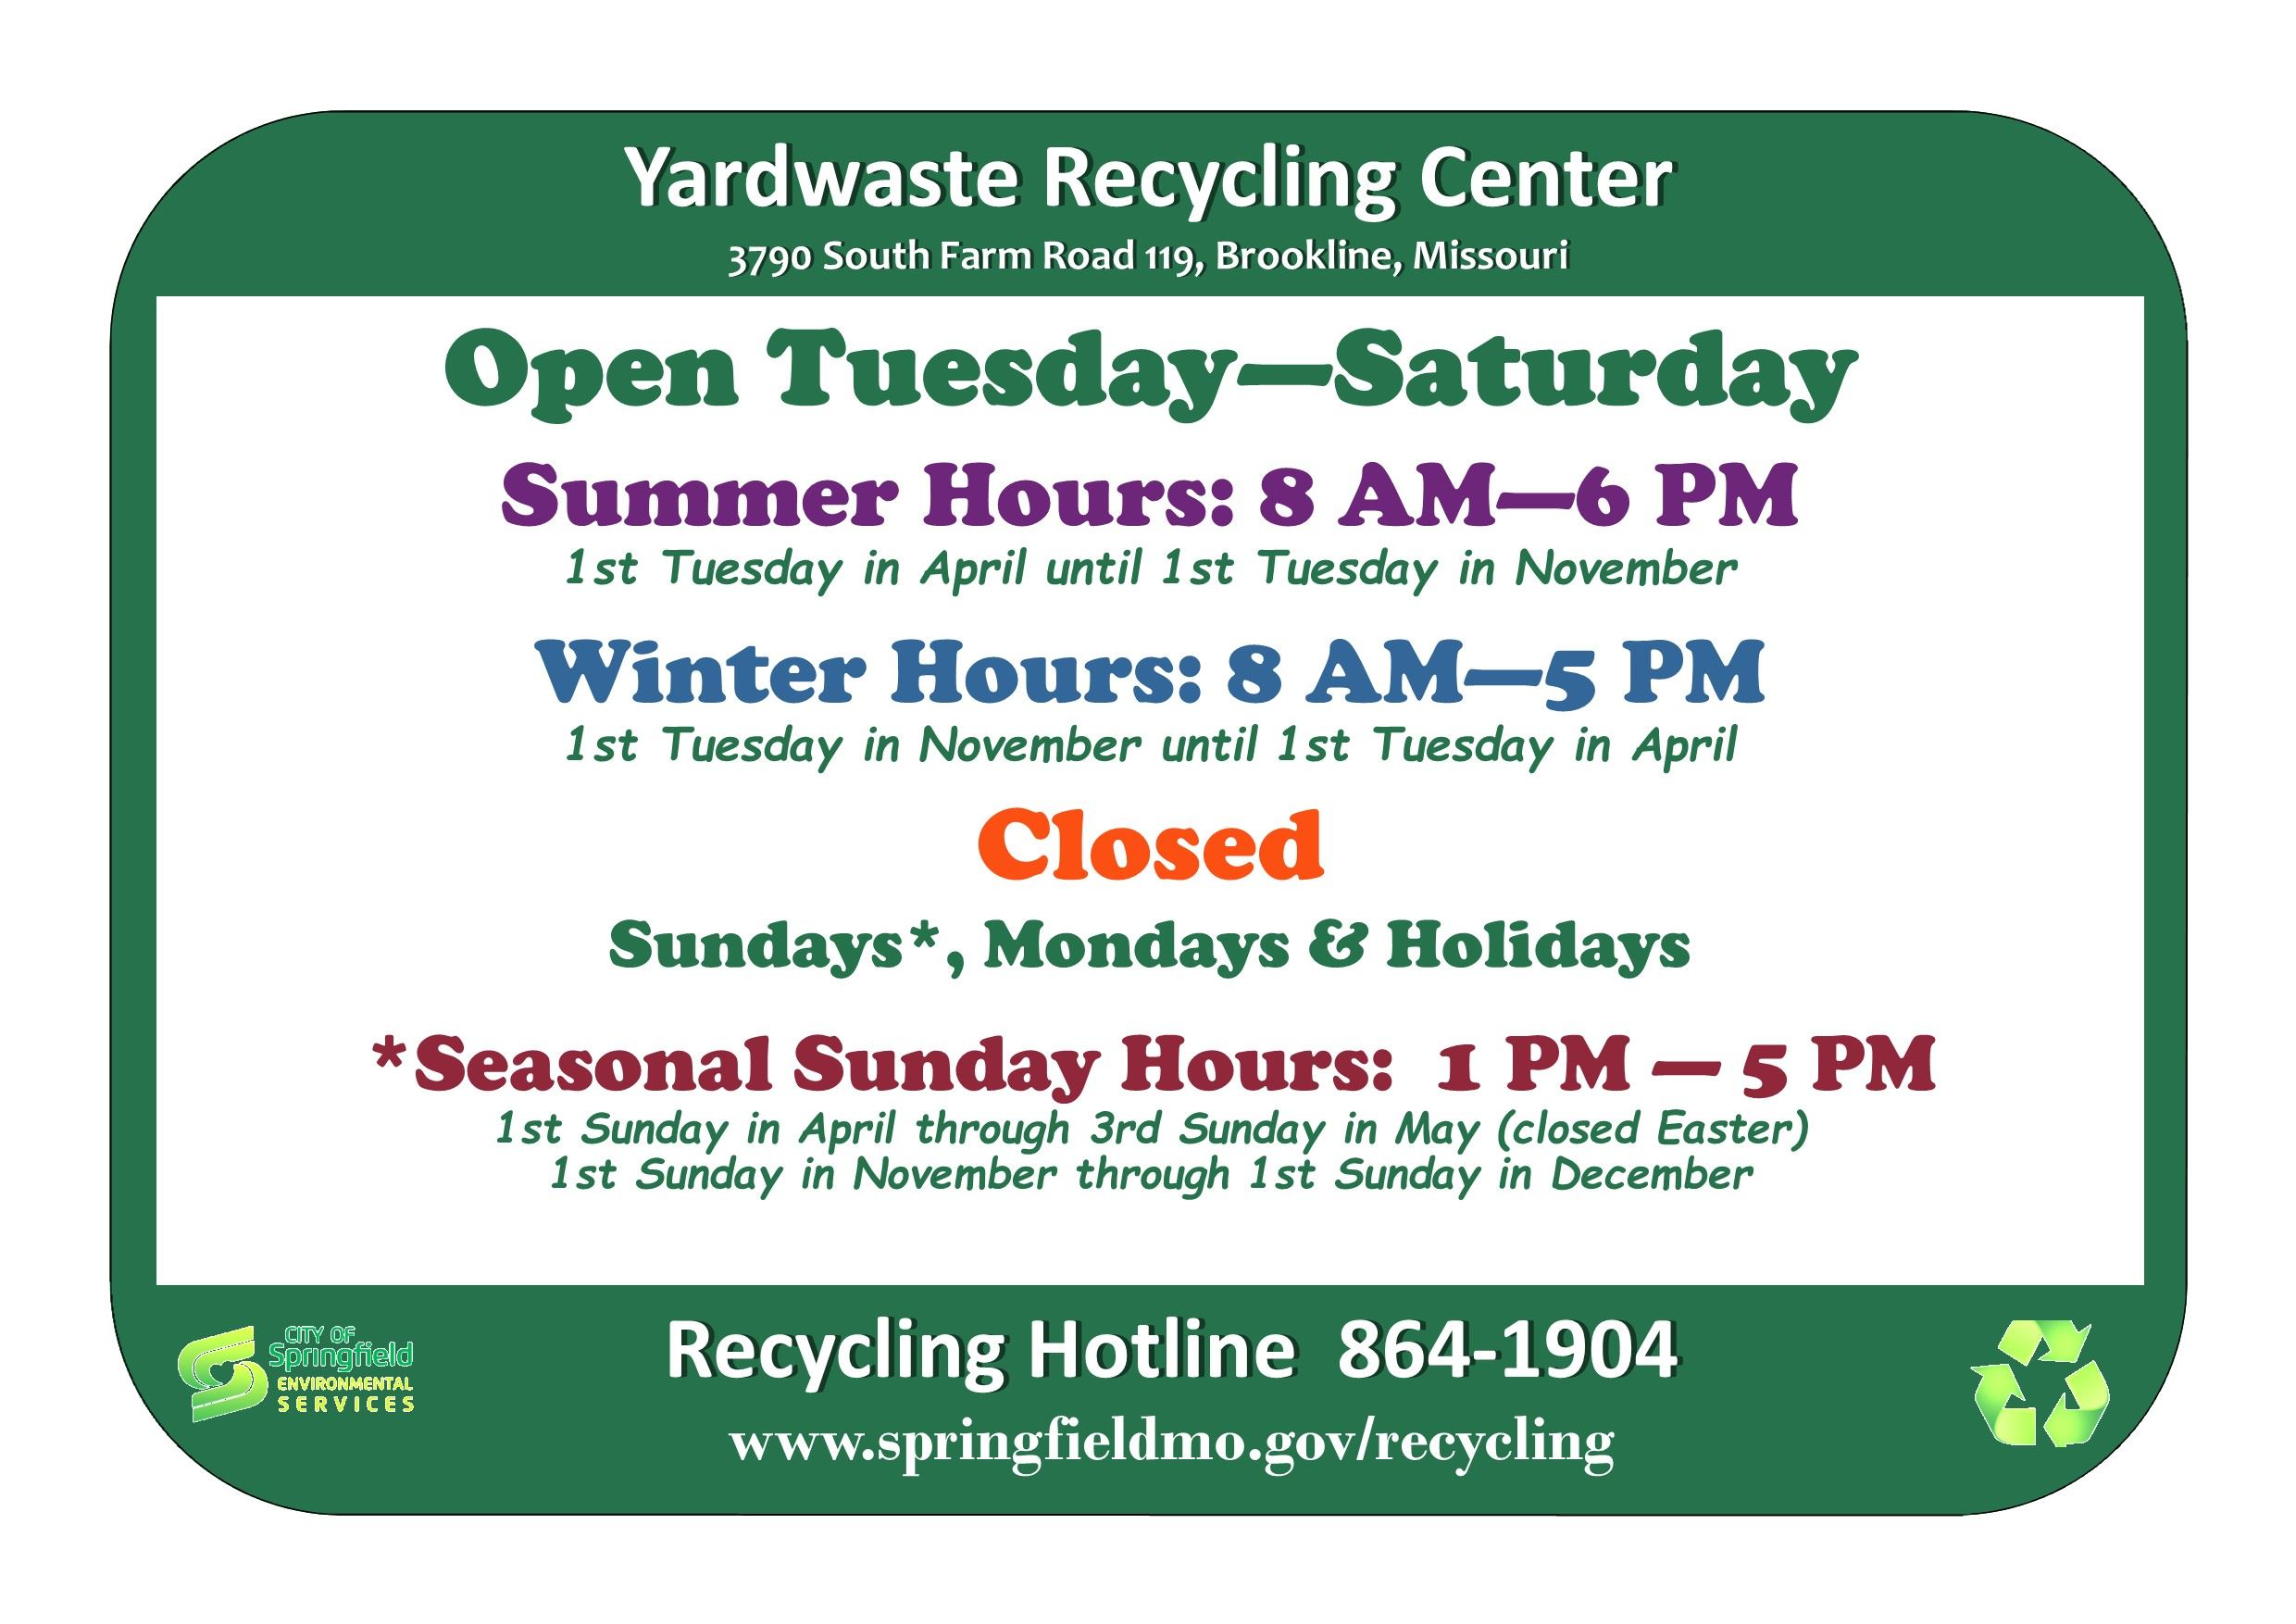 Yardwaste Recycling Center